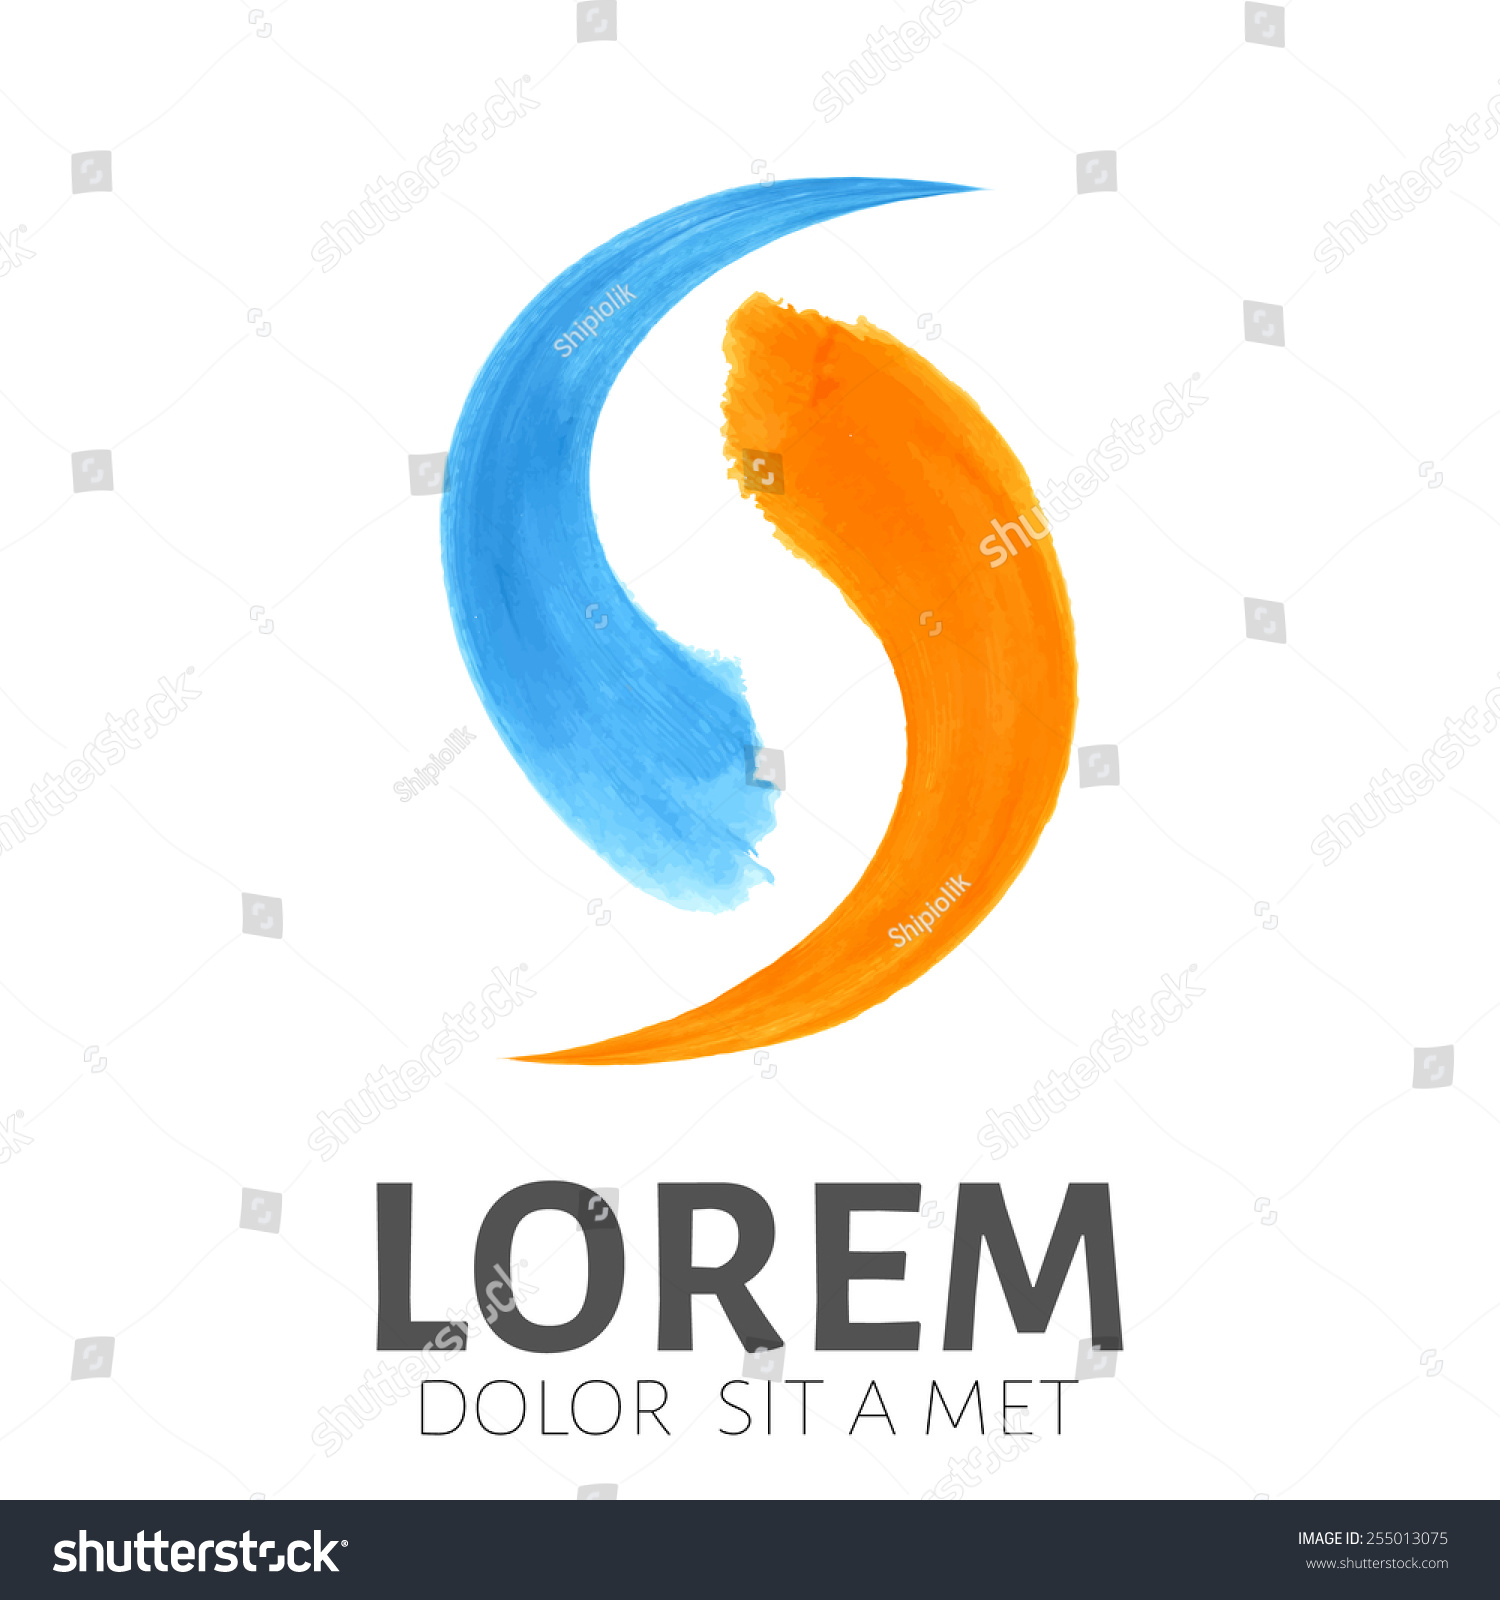 Business logo template plumbing emblem symbol stock vector plumbing emblem symbol watercolor brush strokes fire and water connection biocorpaavc Choice Image